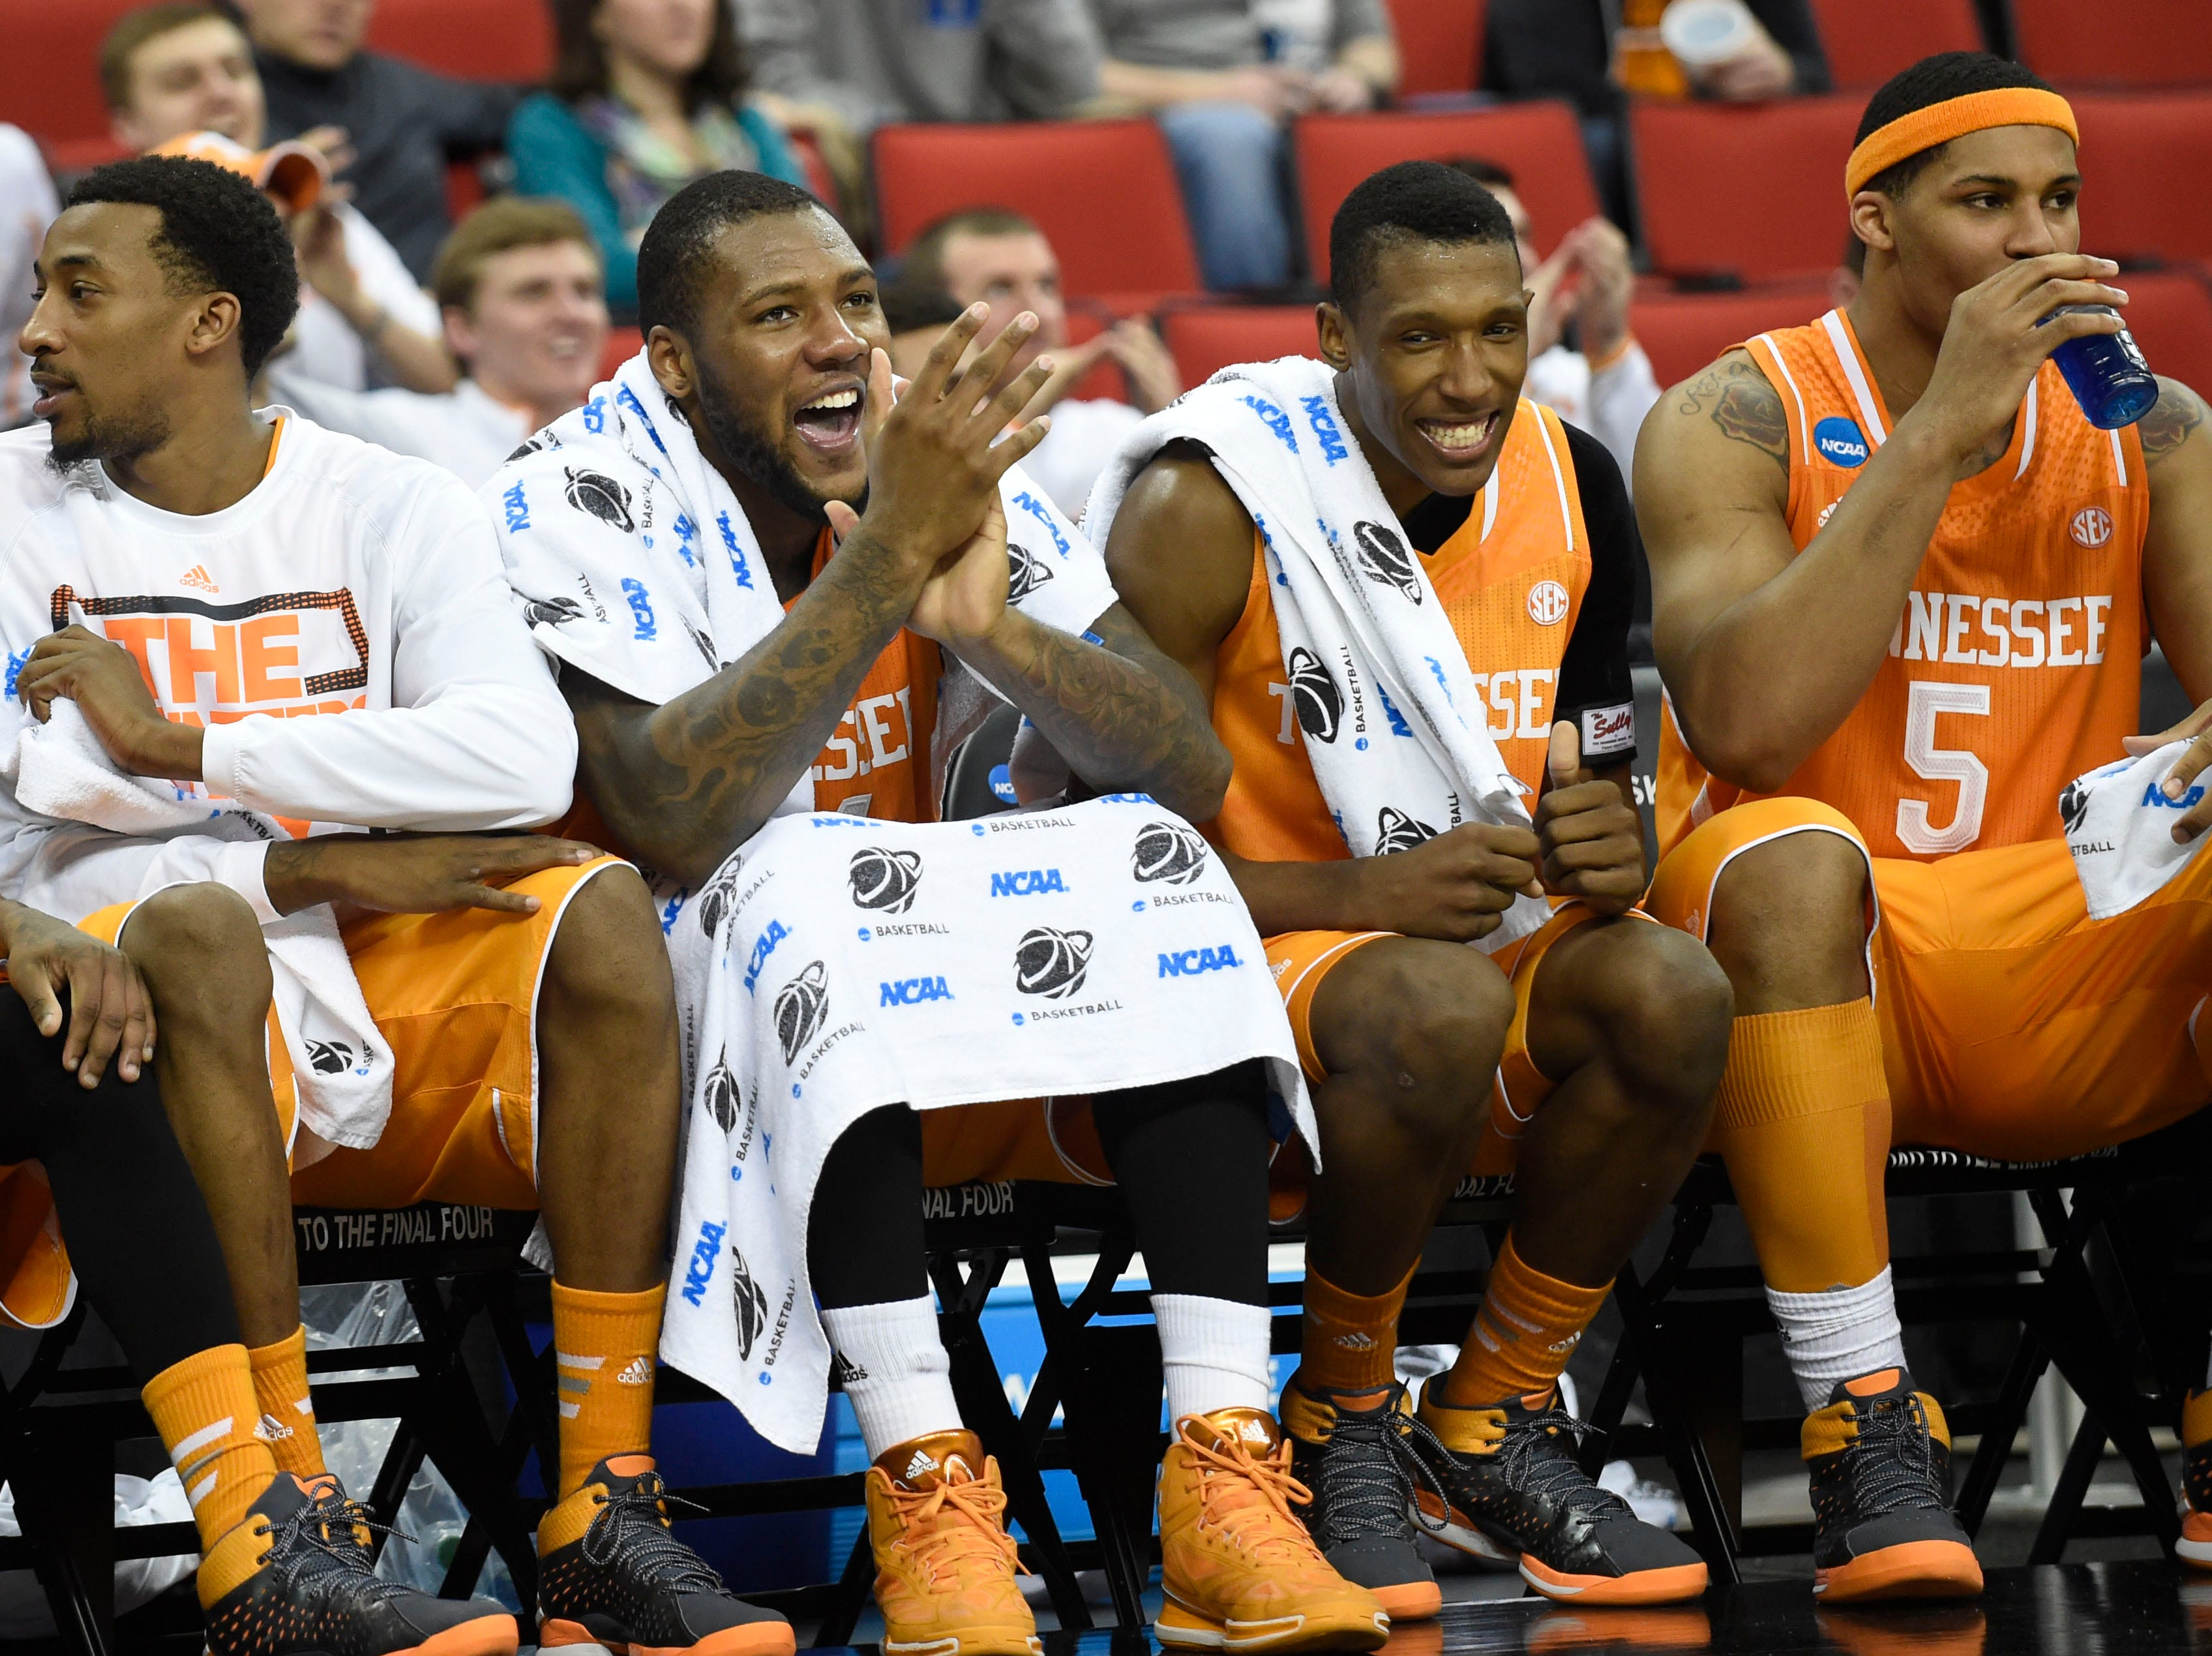 Tennessee guard Jordan McRae, Tennessee forward Jeronne Maymon, Tennessee guard Josh Richardson, and Tennessee forward Jarnell Stokes, from left, celebrate Tennessee's 86-67 win over Massachusetts during the second half of an NCAA tournament game at the PNC Arena in Raleigh, N.C. on Friday, March 21, 2014.